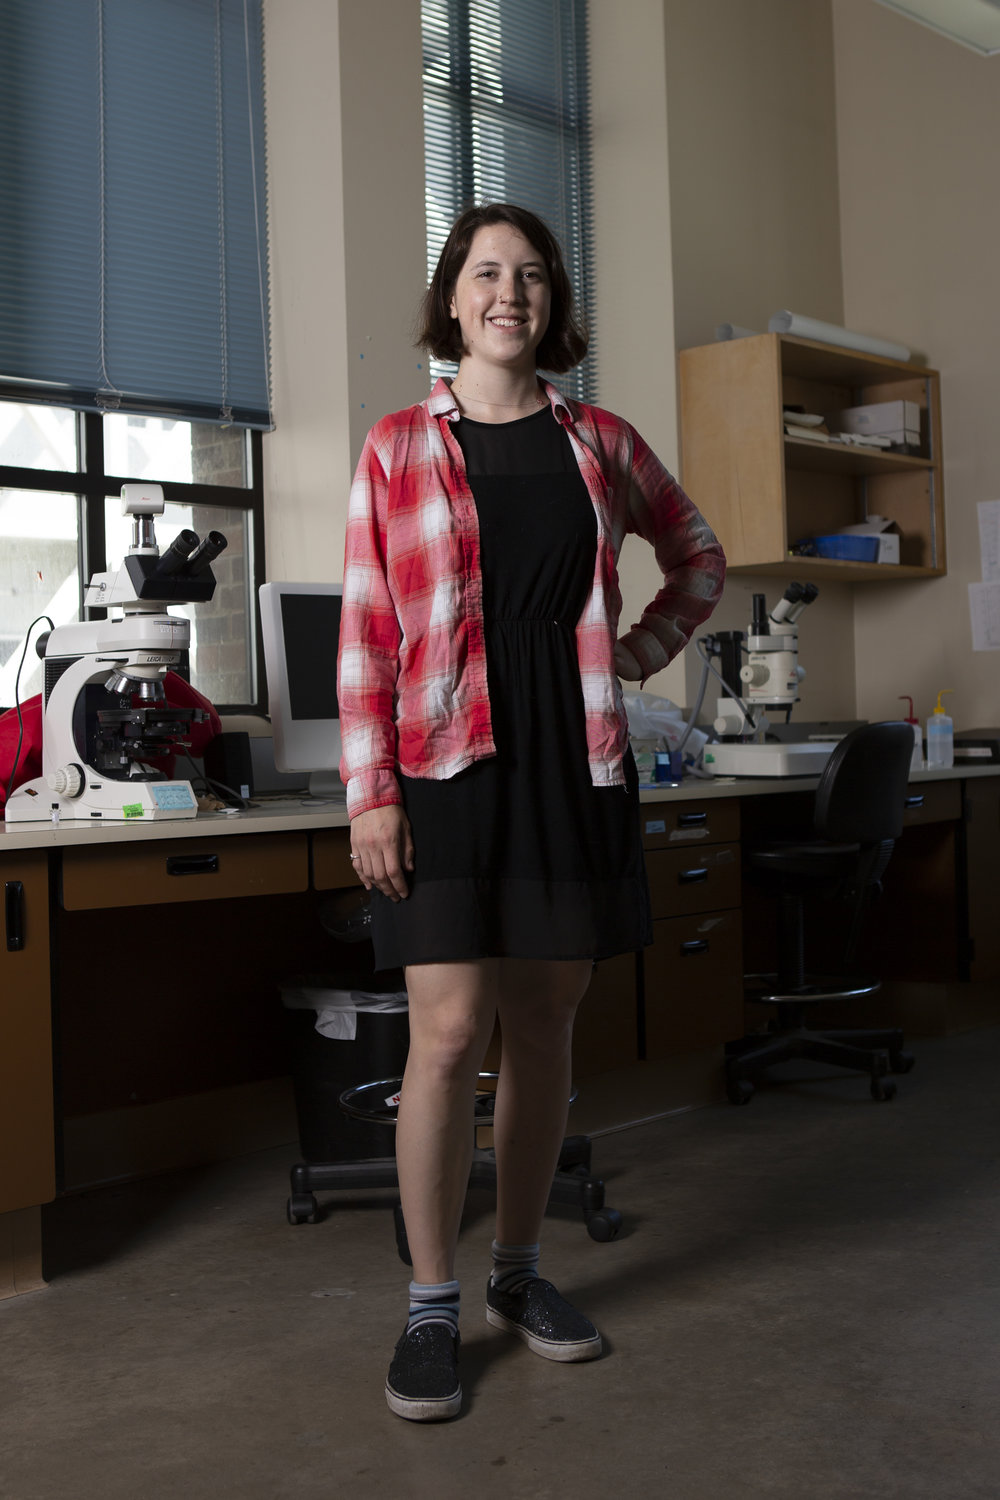 """Anne Fulton is a geochemistry graduate student and coordinator for Women in Graduate Science's Joint Undergraduate-Graduate Mentorship Program (JUMP). She became involved with the mentorship program to show undergraduate students that there is a place for them in science despite a lack of diverse representation in full-time faculty.  """"You need to be able to see yourself in those positions,"""" she said, """"Otherwise you'll be like, 'I don't see myself being a professor because there's nobody I can relate to in that position.'""""  Currently her research examines the geochemistry of a supervolcano in Eastern California that erupted 700 years ago."""